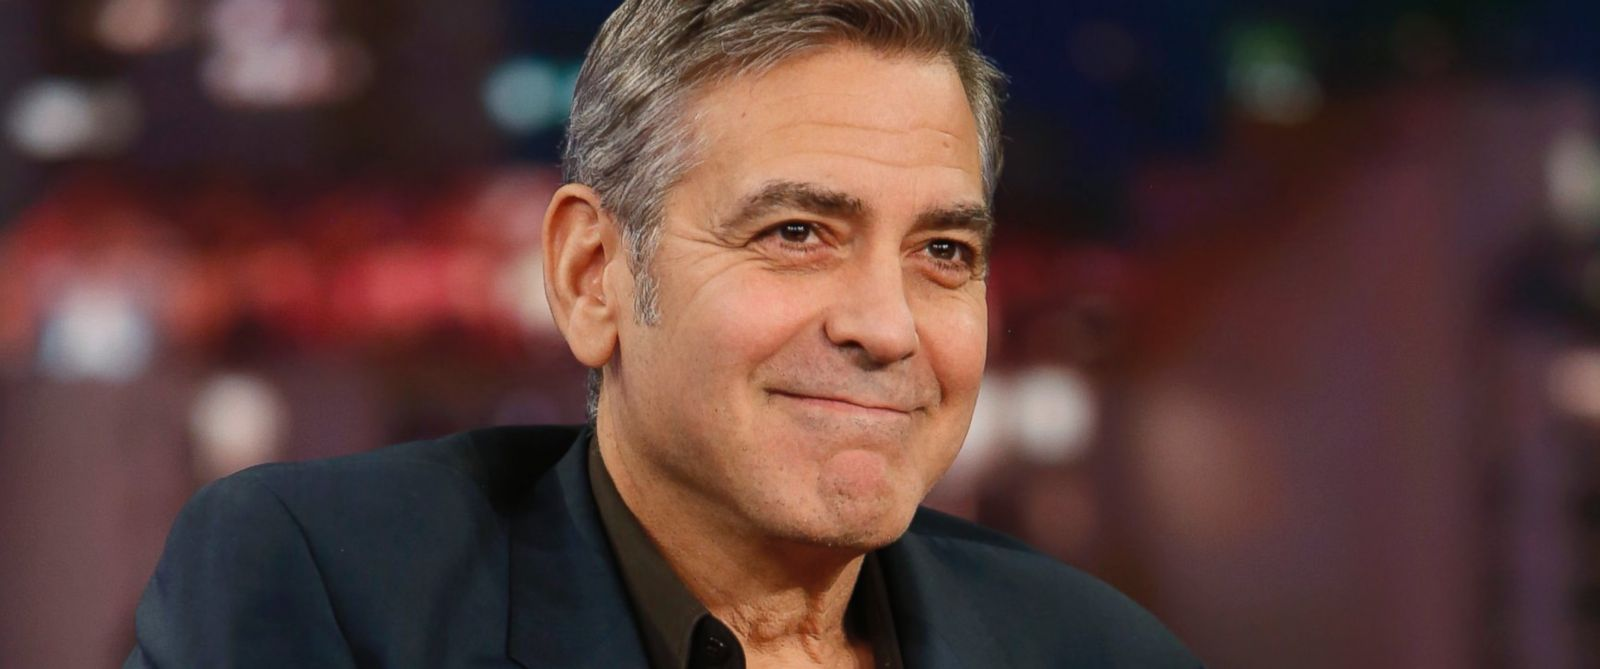 """PHOTO: George Clooney appears on""""Jimmy Kimmel Live,"""" Feb. 2, 2016."""